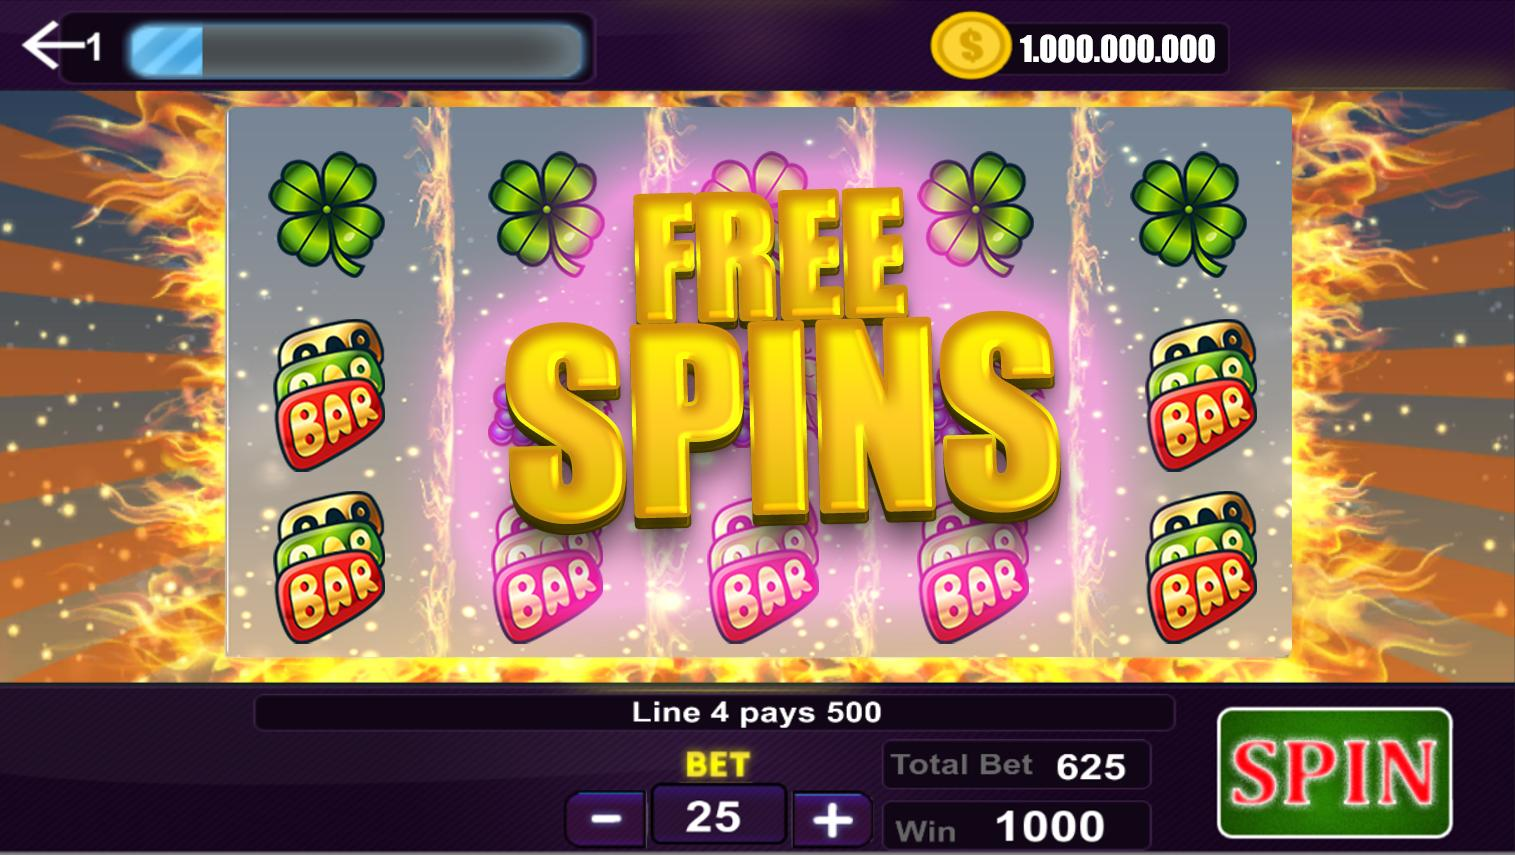 play free spin slot machine